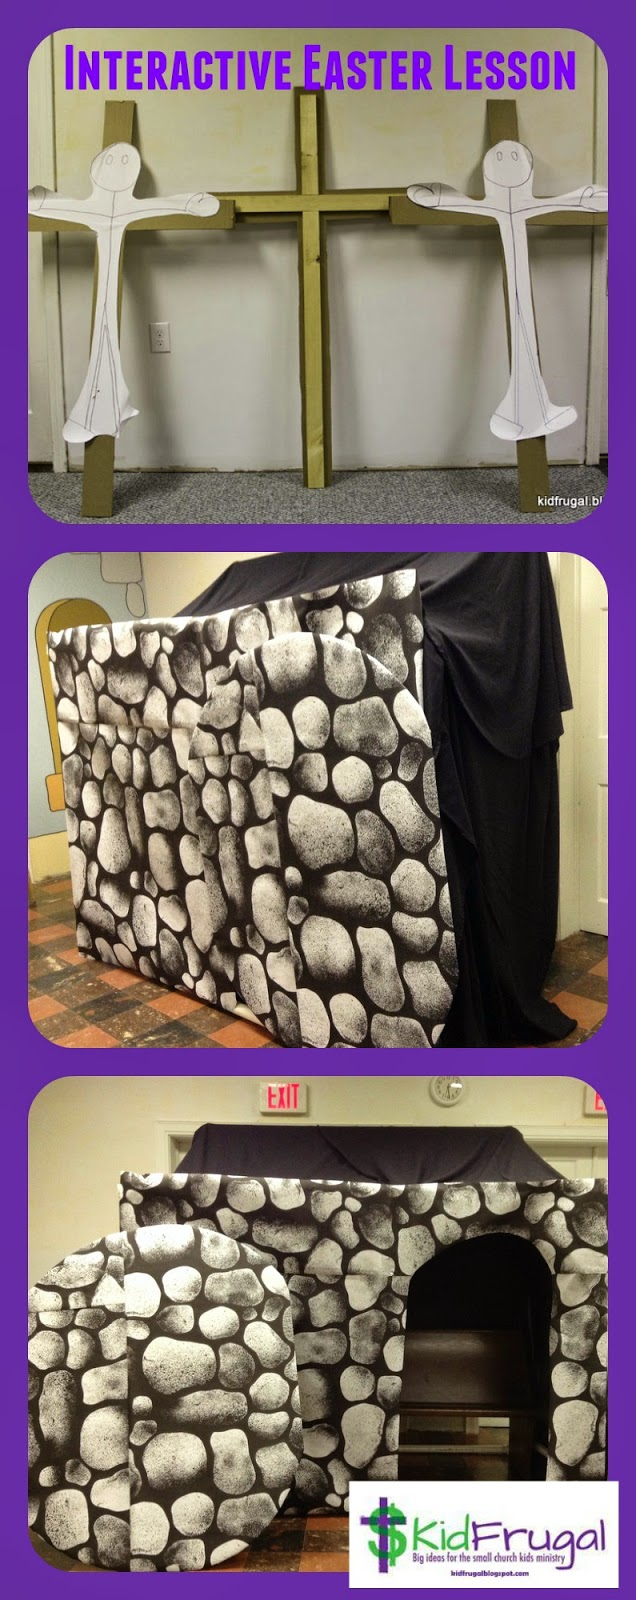 Cavern clipart empty tomb Kidfrugal: tomb The tomb Easter